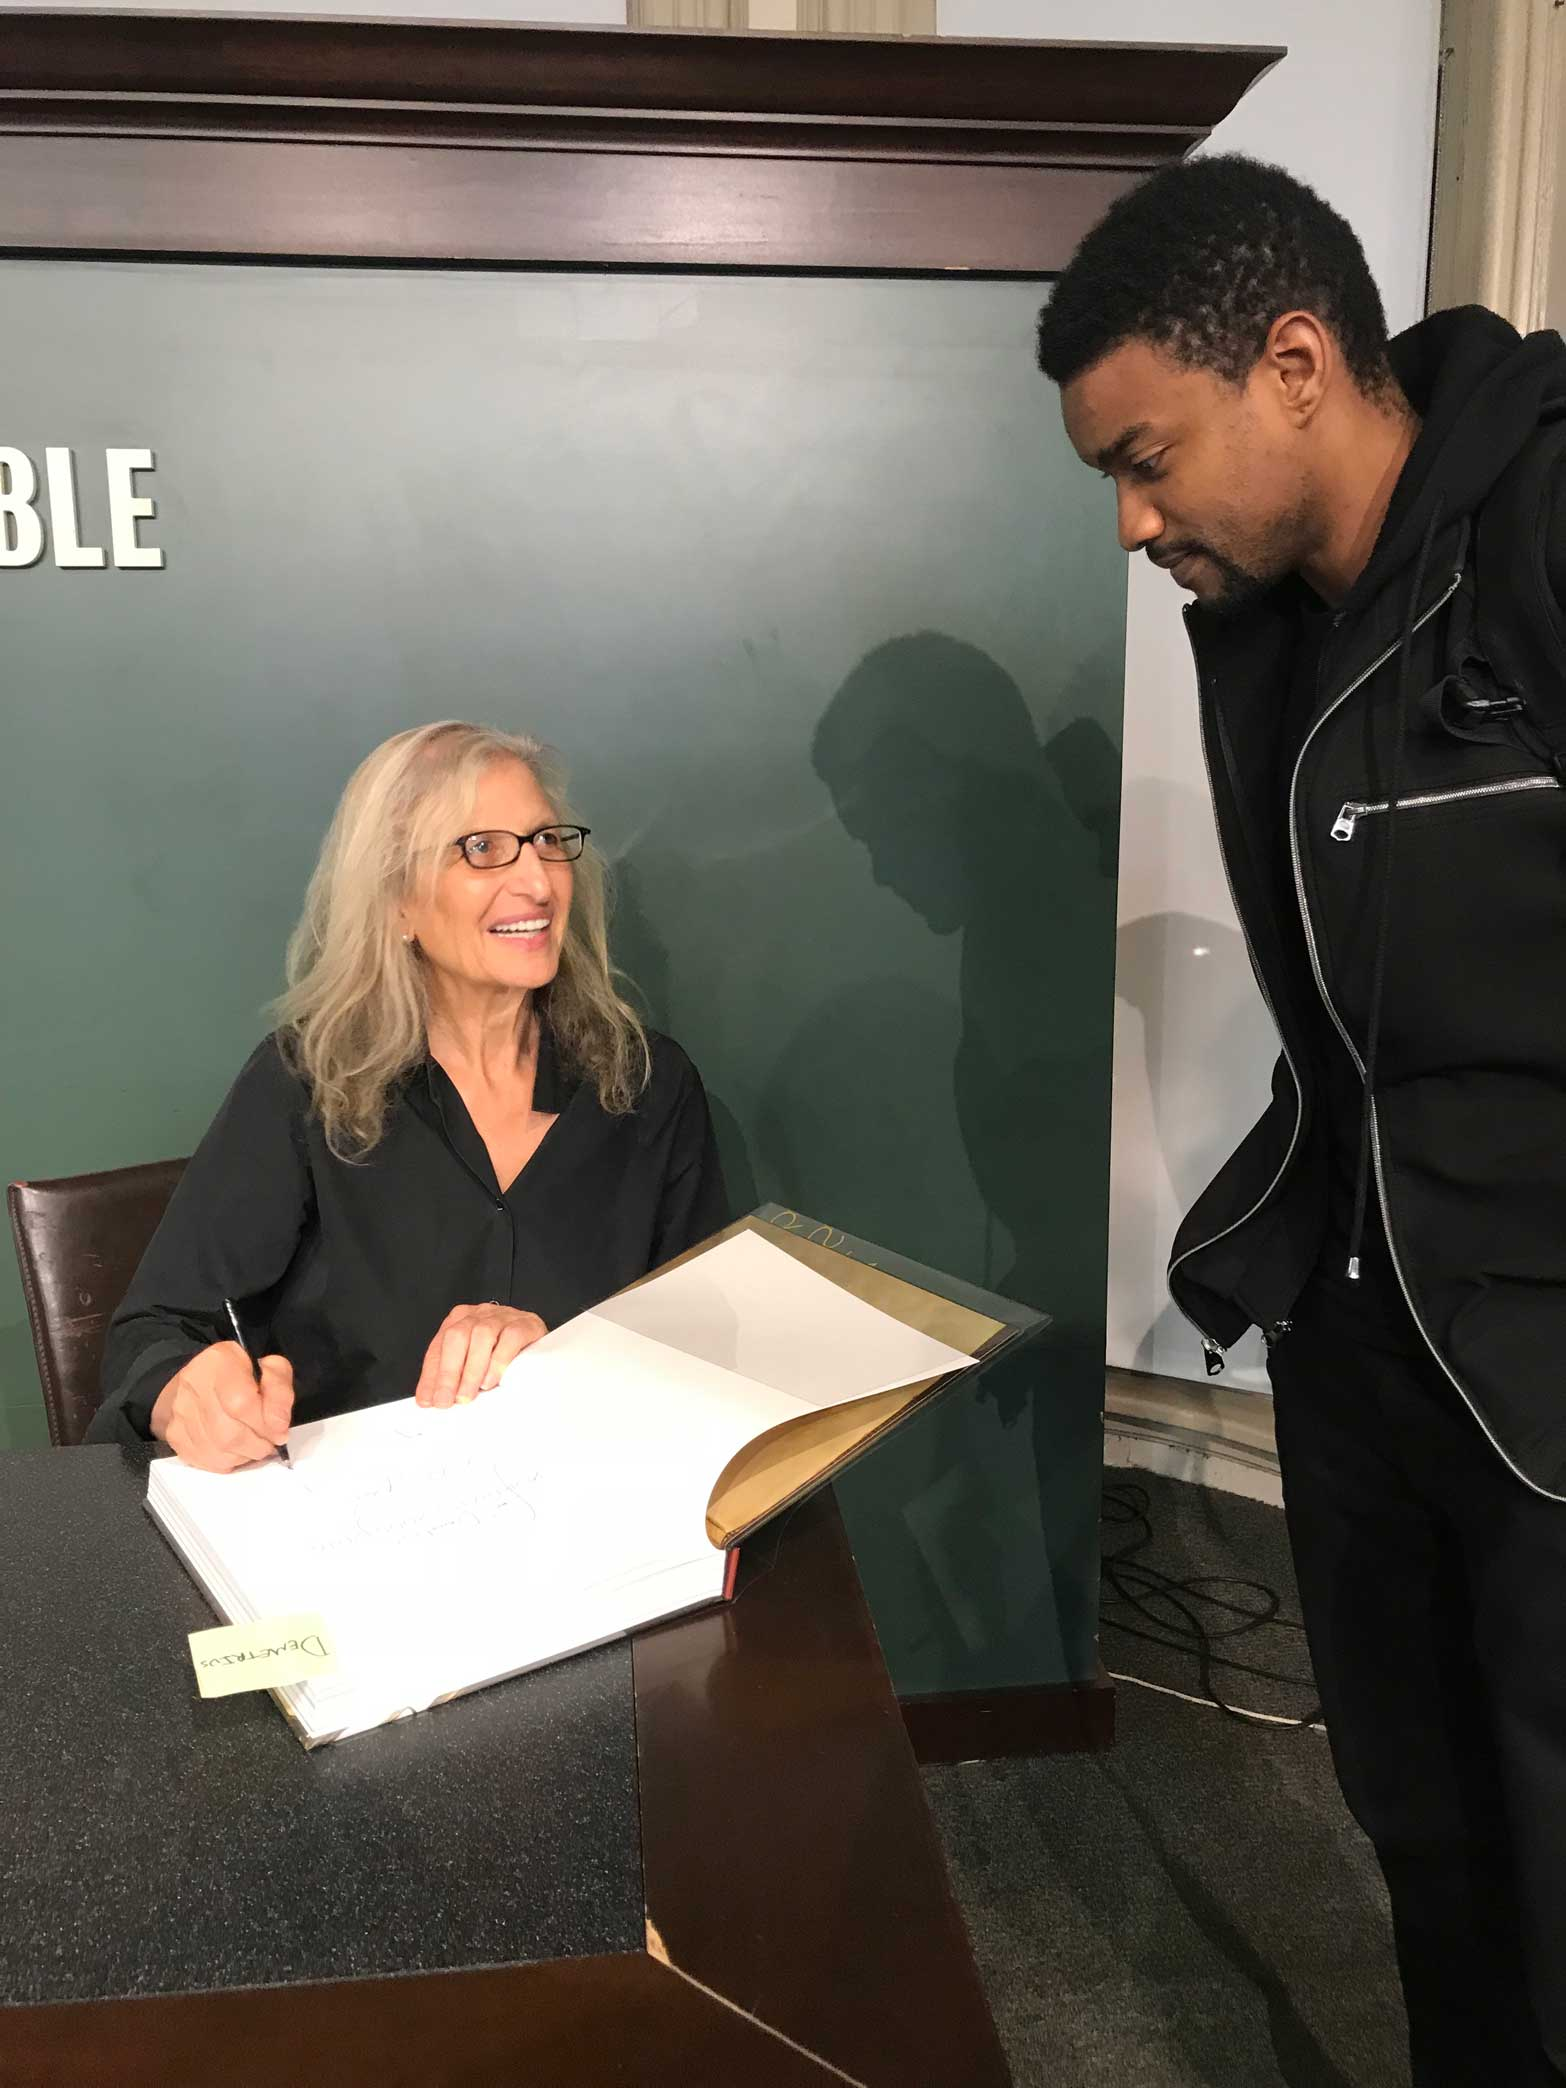 Annie Leibovitz and me being awestruck by her. New York City, NY.